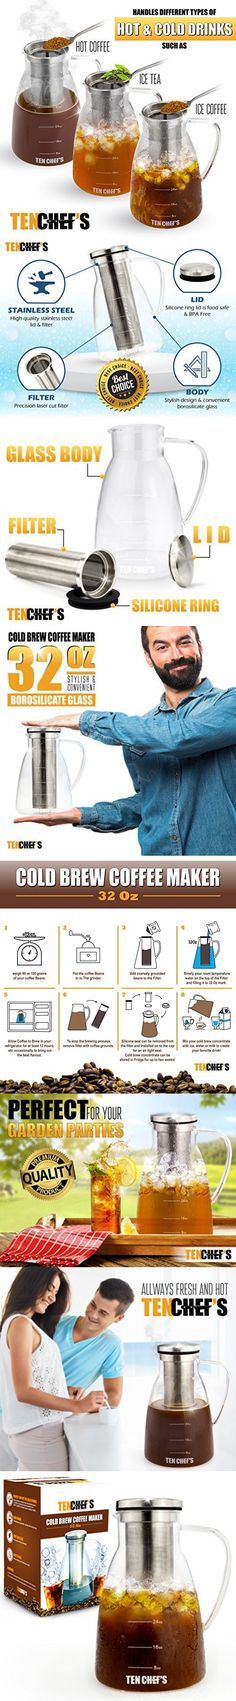 cold brew coffee maker and hyper iced tea infuser by 32 oz